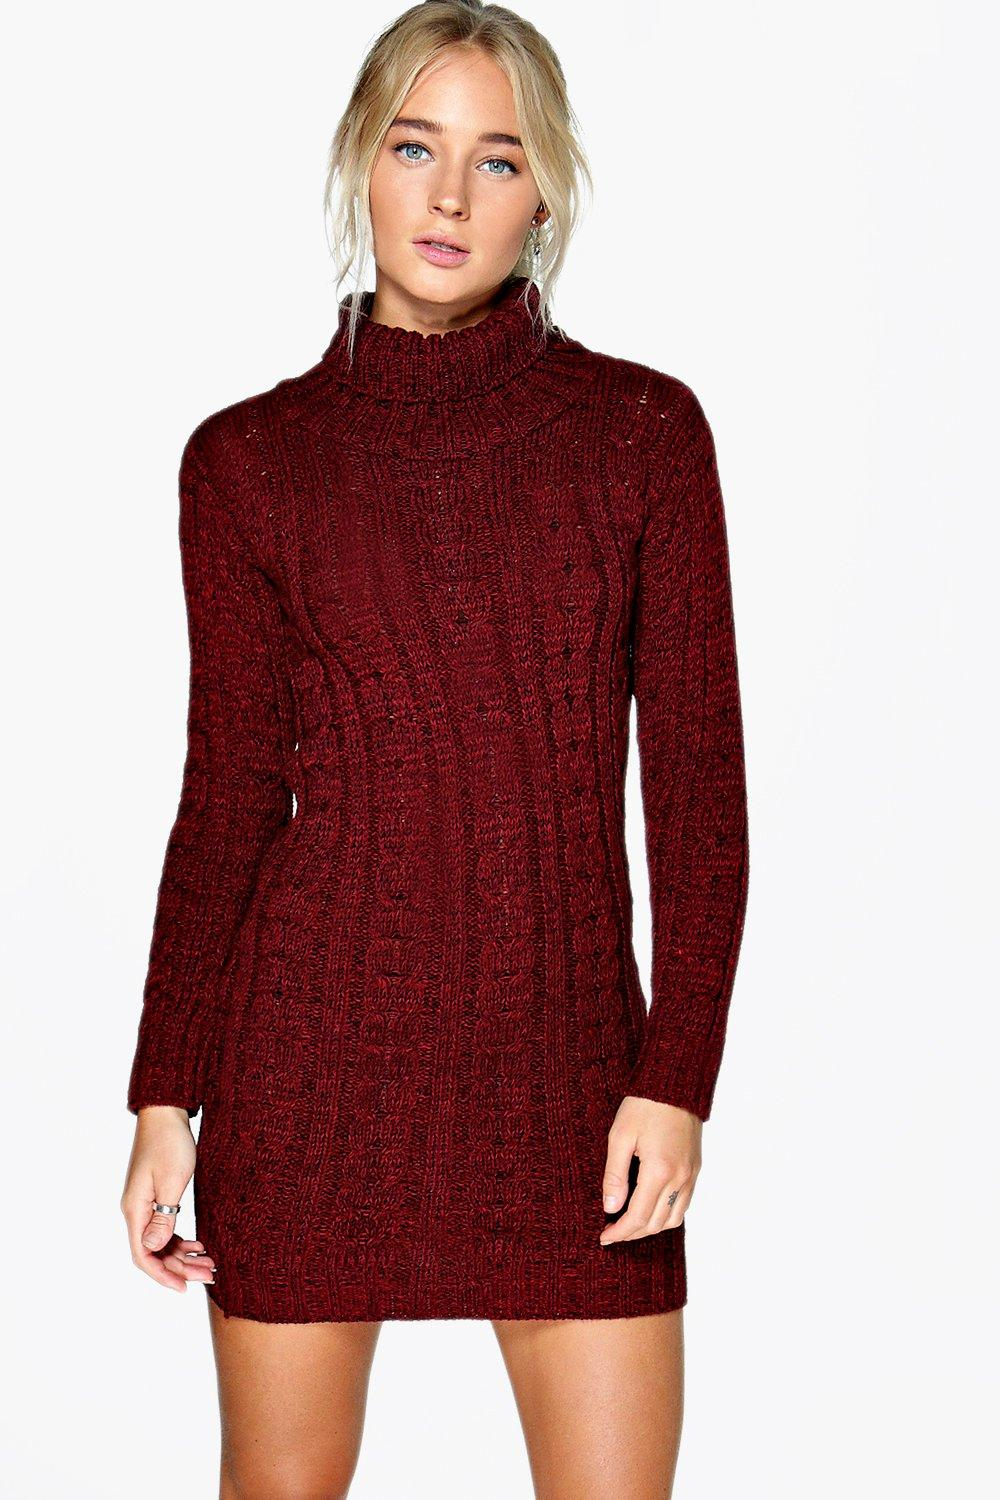 Find cable knit sweater dress at ShopStyle. Shop the latest collection of cable knit sweater dress from the most popular stores - all in one place.